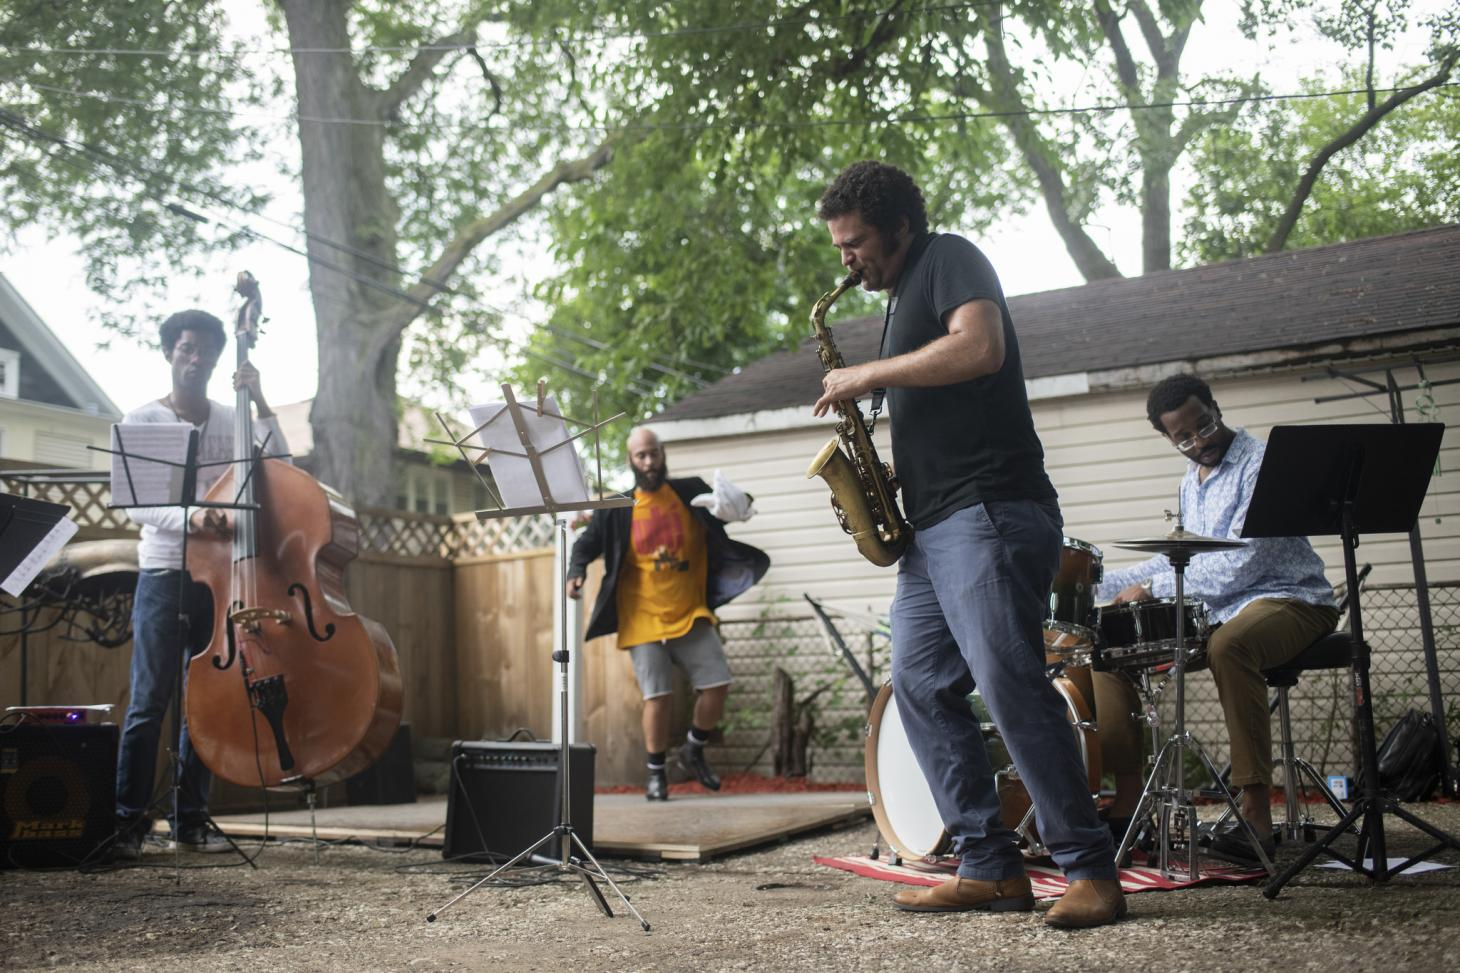 Back Alley Jazz 2018 in Chicago's South Shore